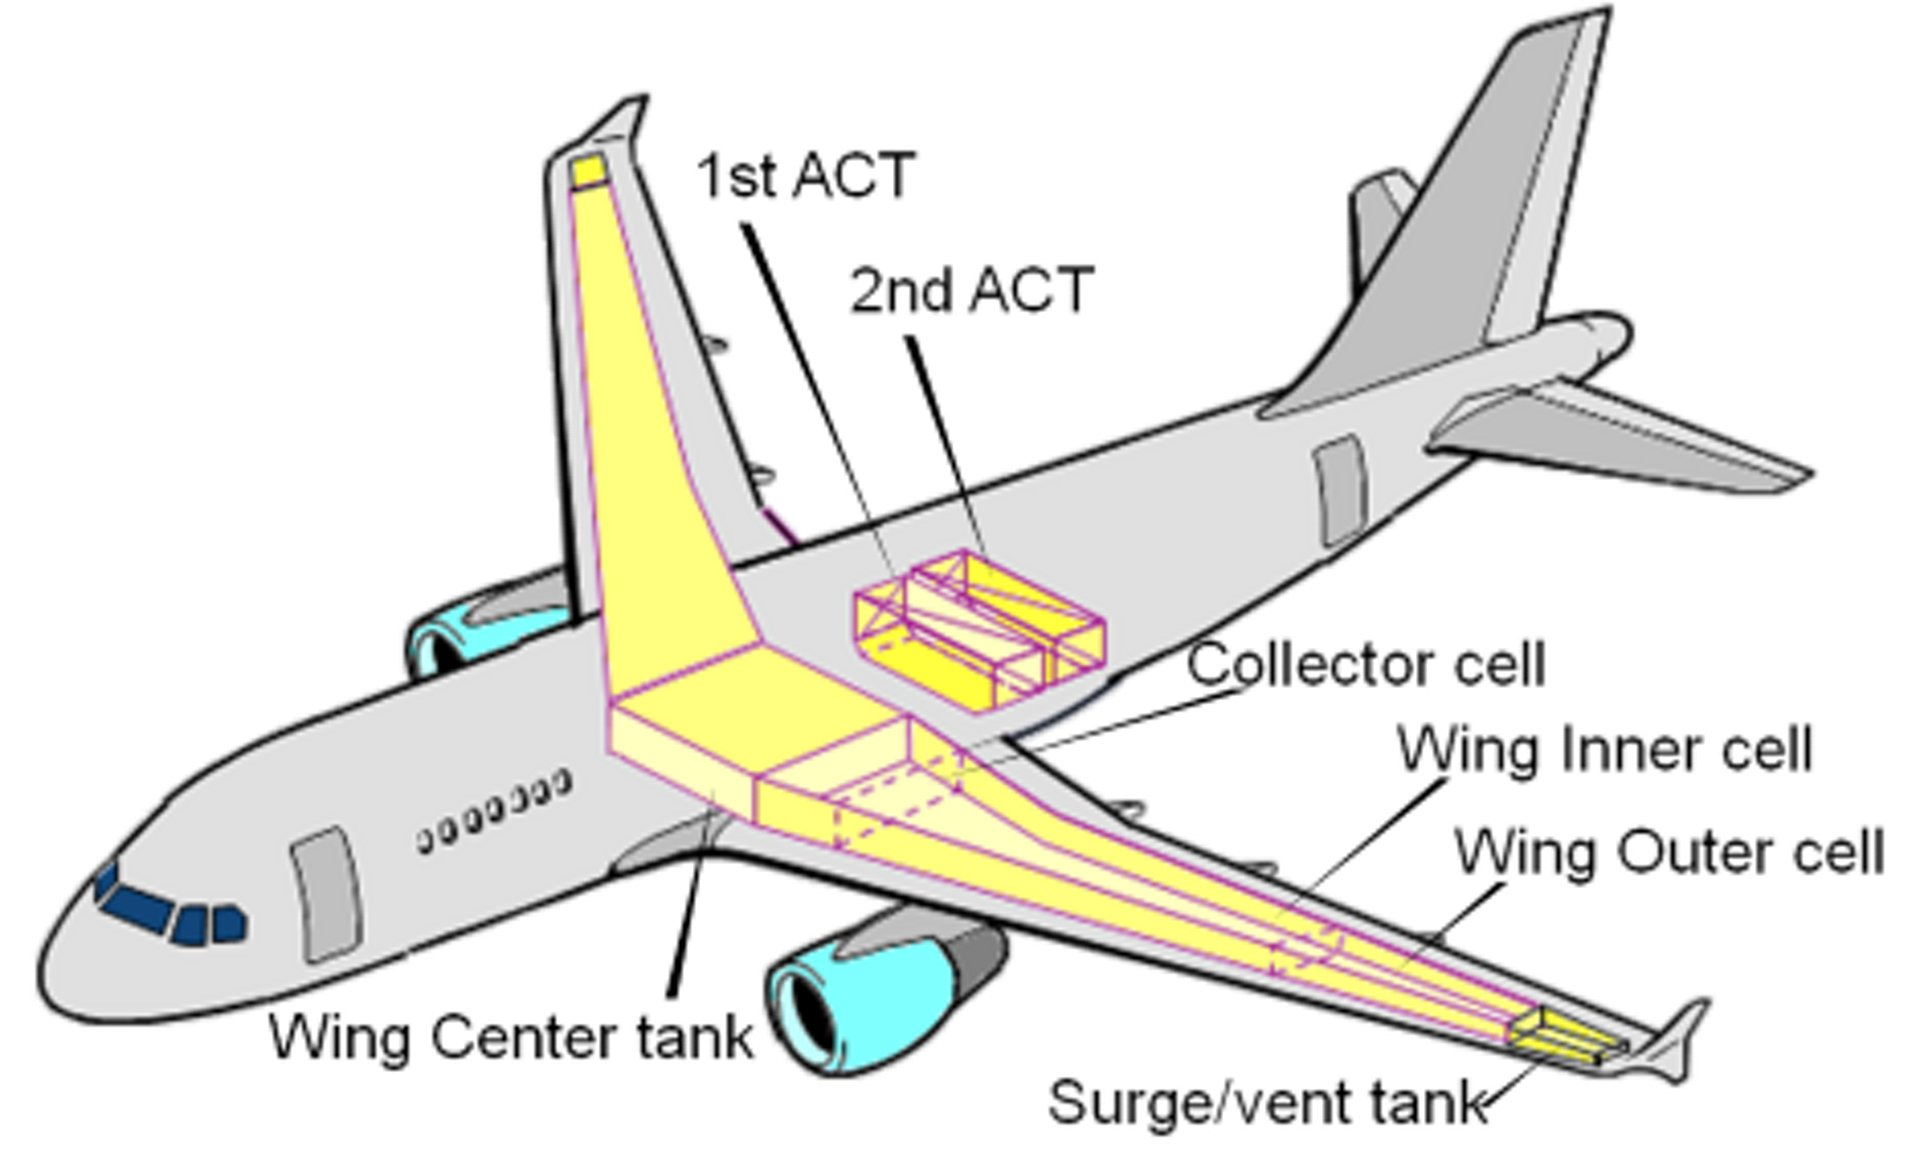 Additional Center Tanks (ACT)